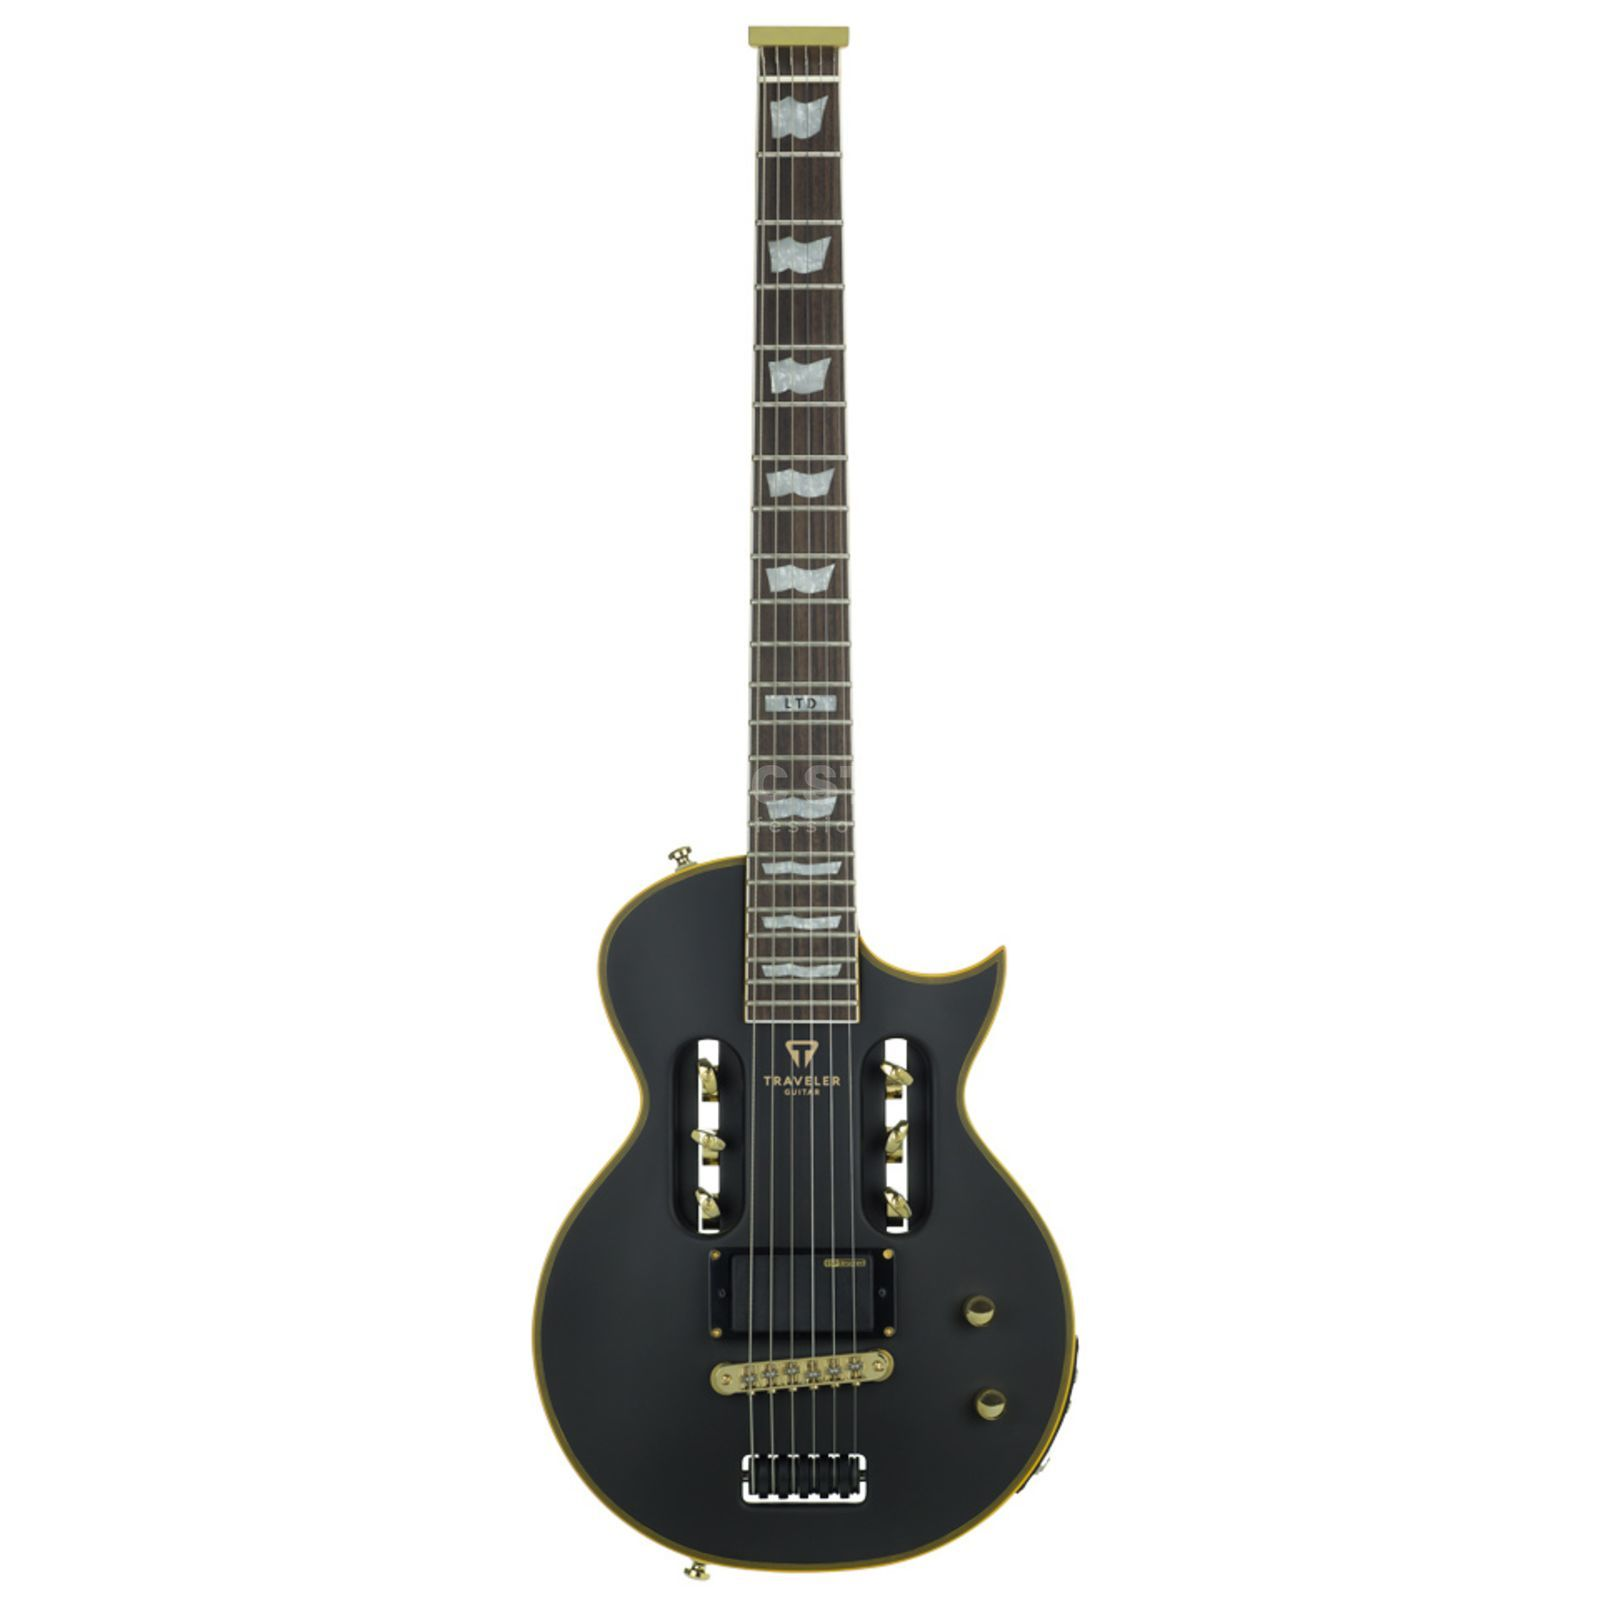 Traveler Guitar LTD EC-1 Vintage Black Product Image